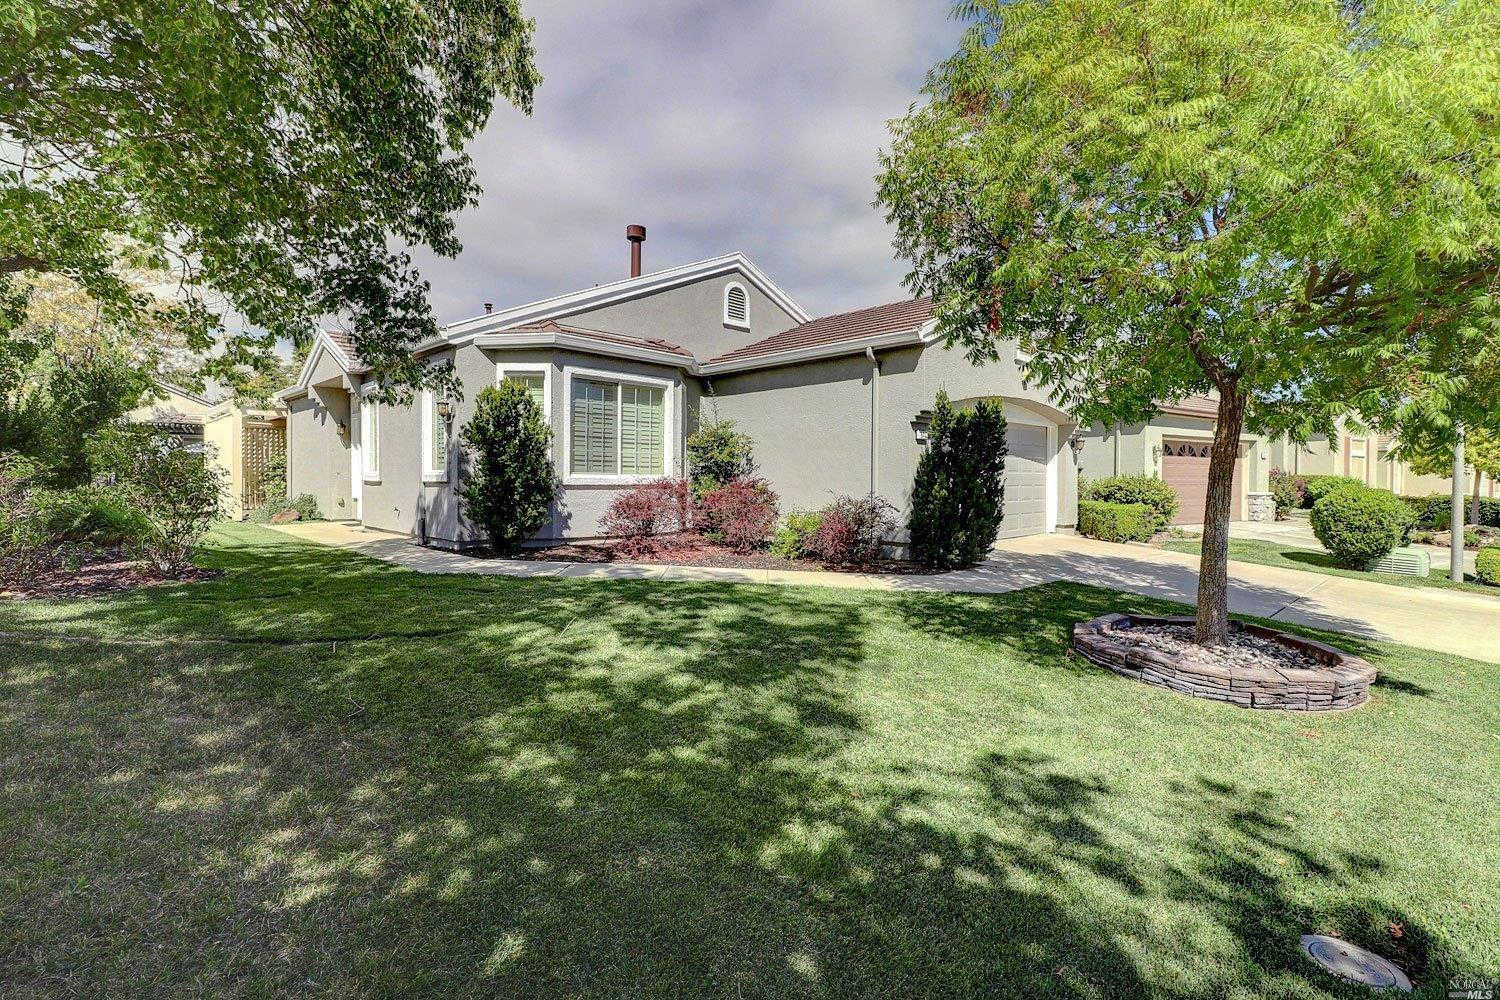 841 Inverness Drive, Rio Vista, CA 94571 has an Open House on  Saturday, October 12, 2019 12:00 PM to 3:00 PM